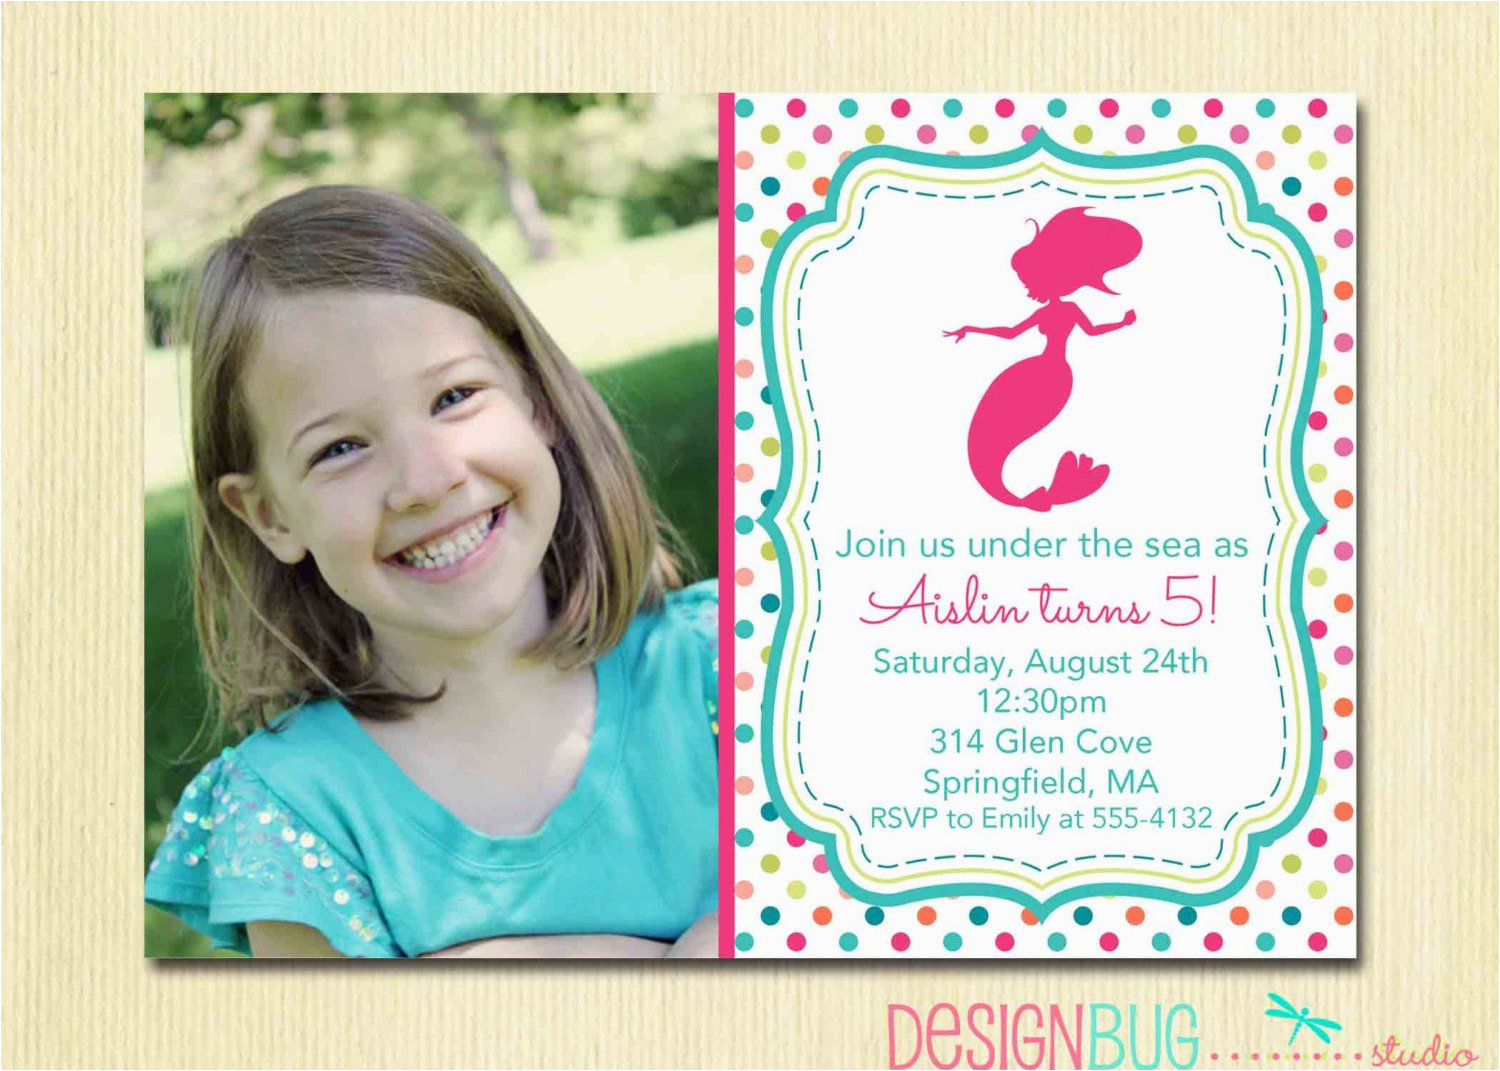 7 Year Old Birthday Invitation Wording Mermaid 1 2 3 4 5